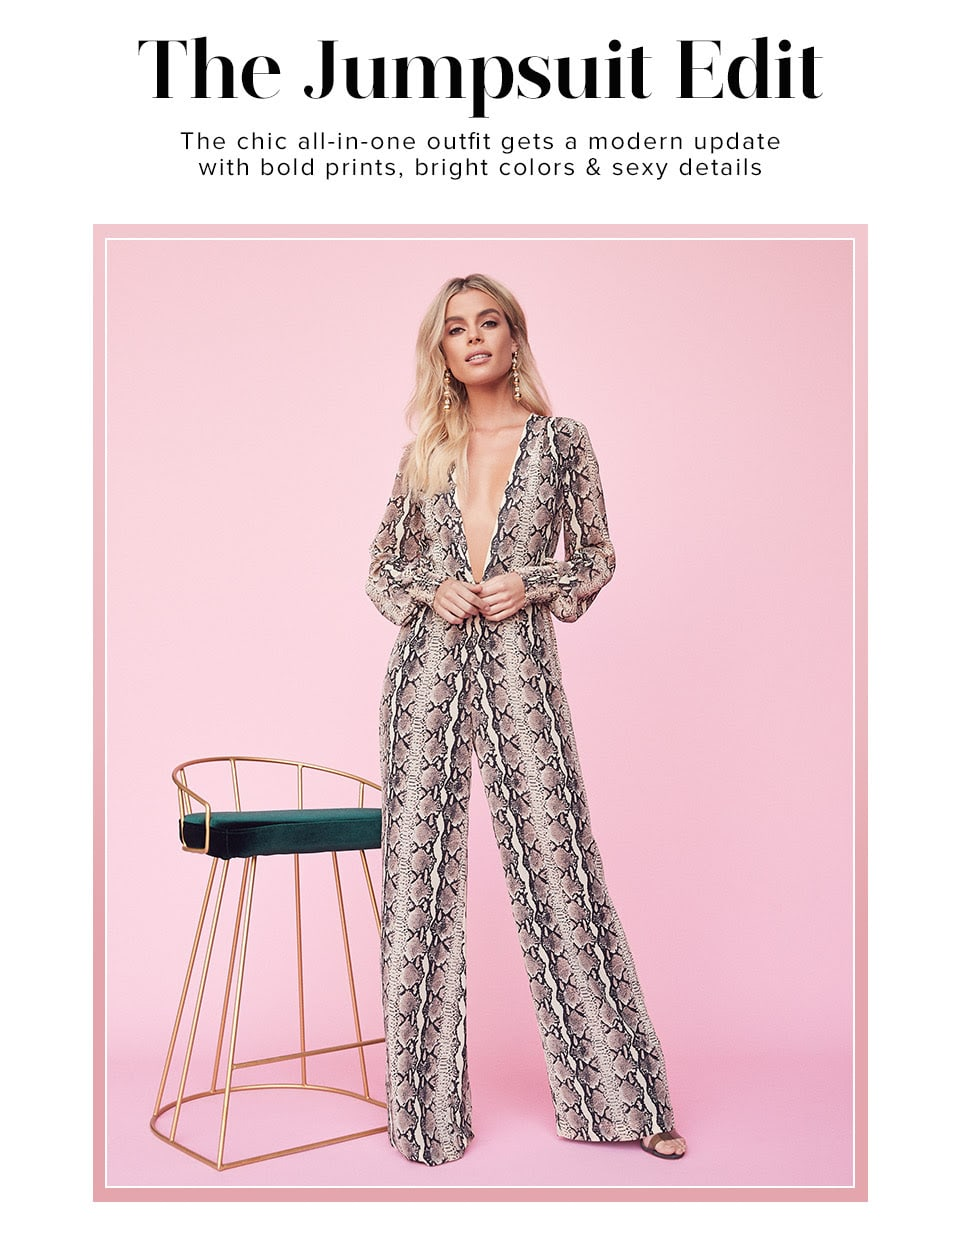 THE JUMPSUIT EDIT. The chic all-in-one outfit gets a modern update with bold prints, bright colors & sexy details. Shop The Edit.